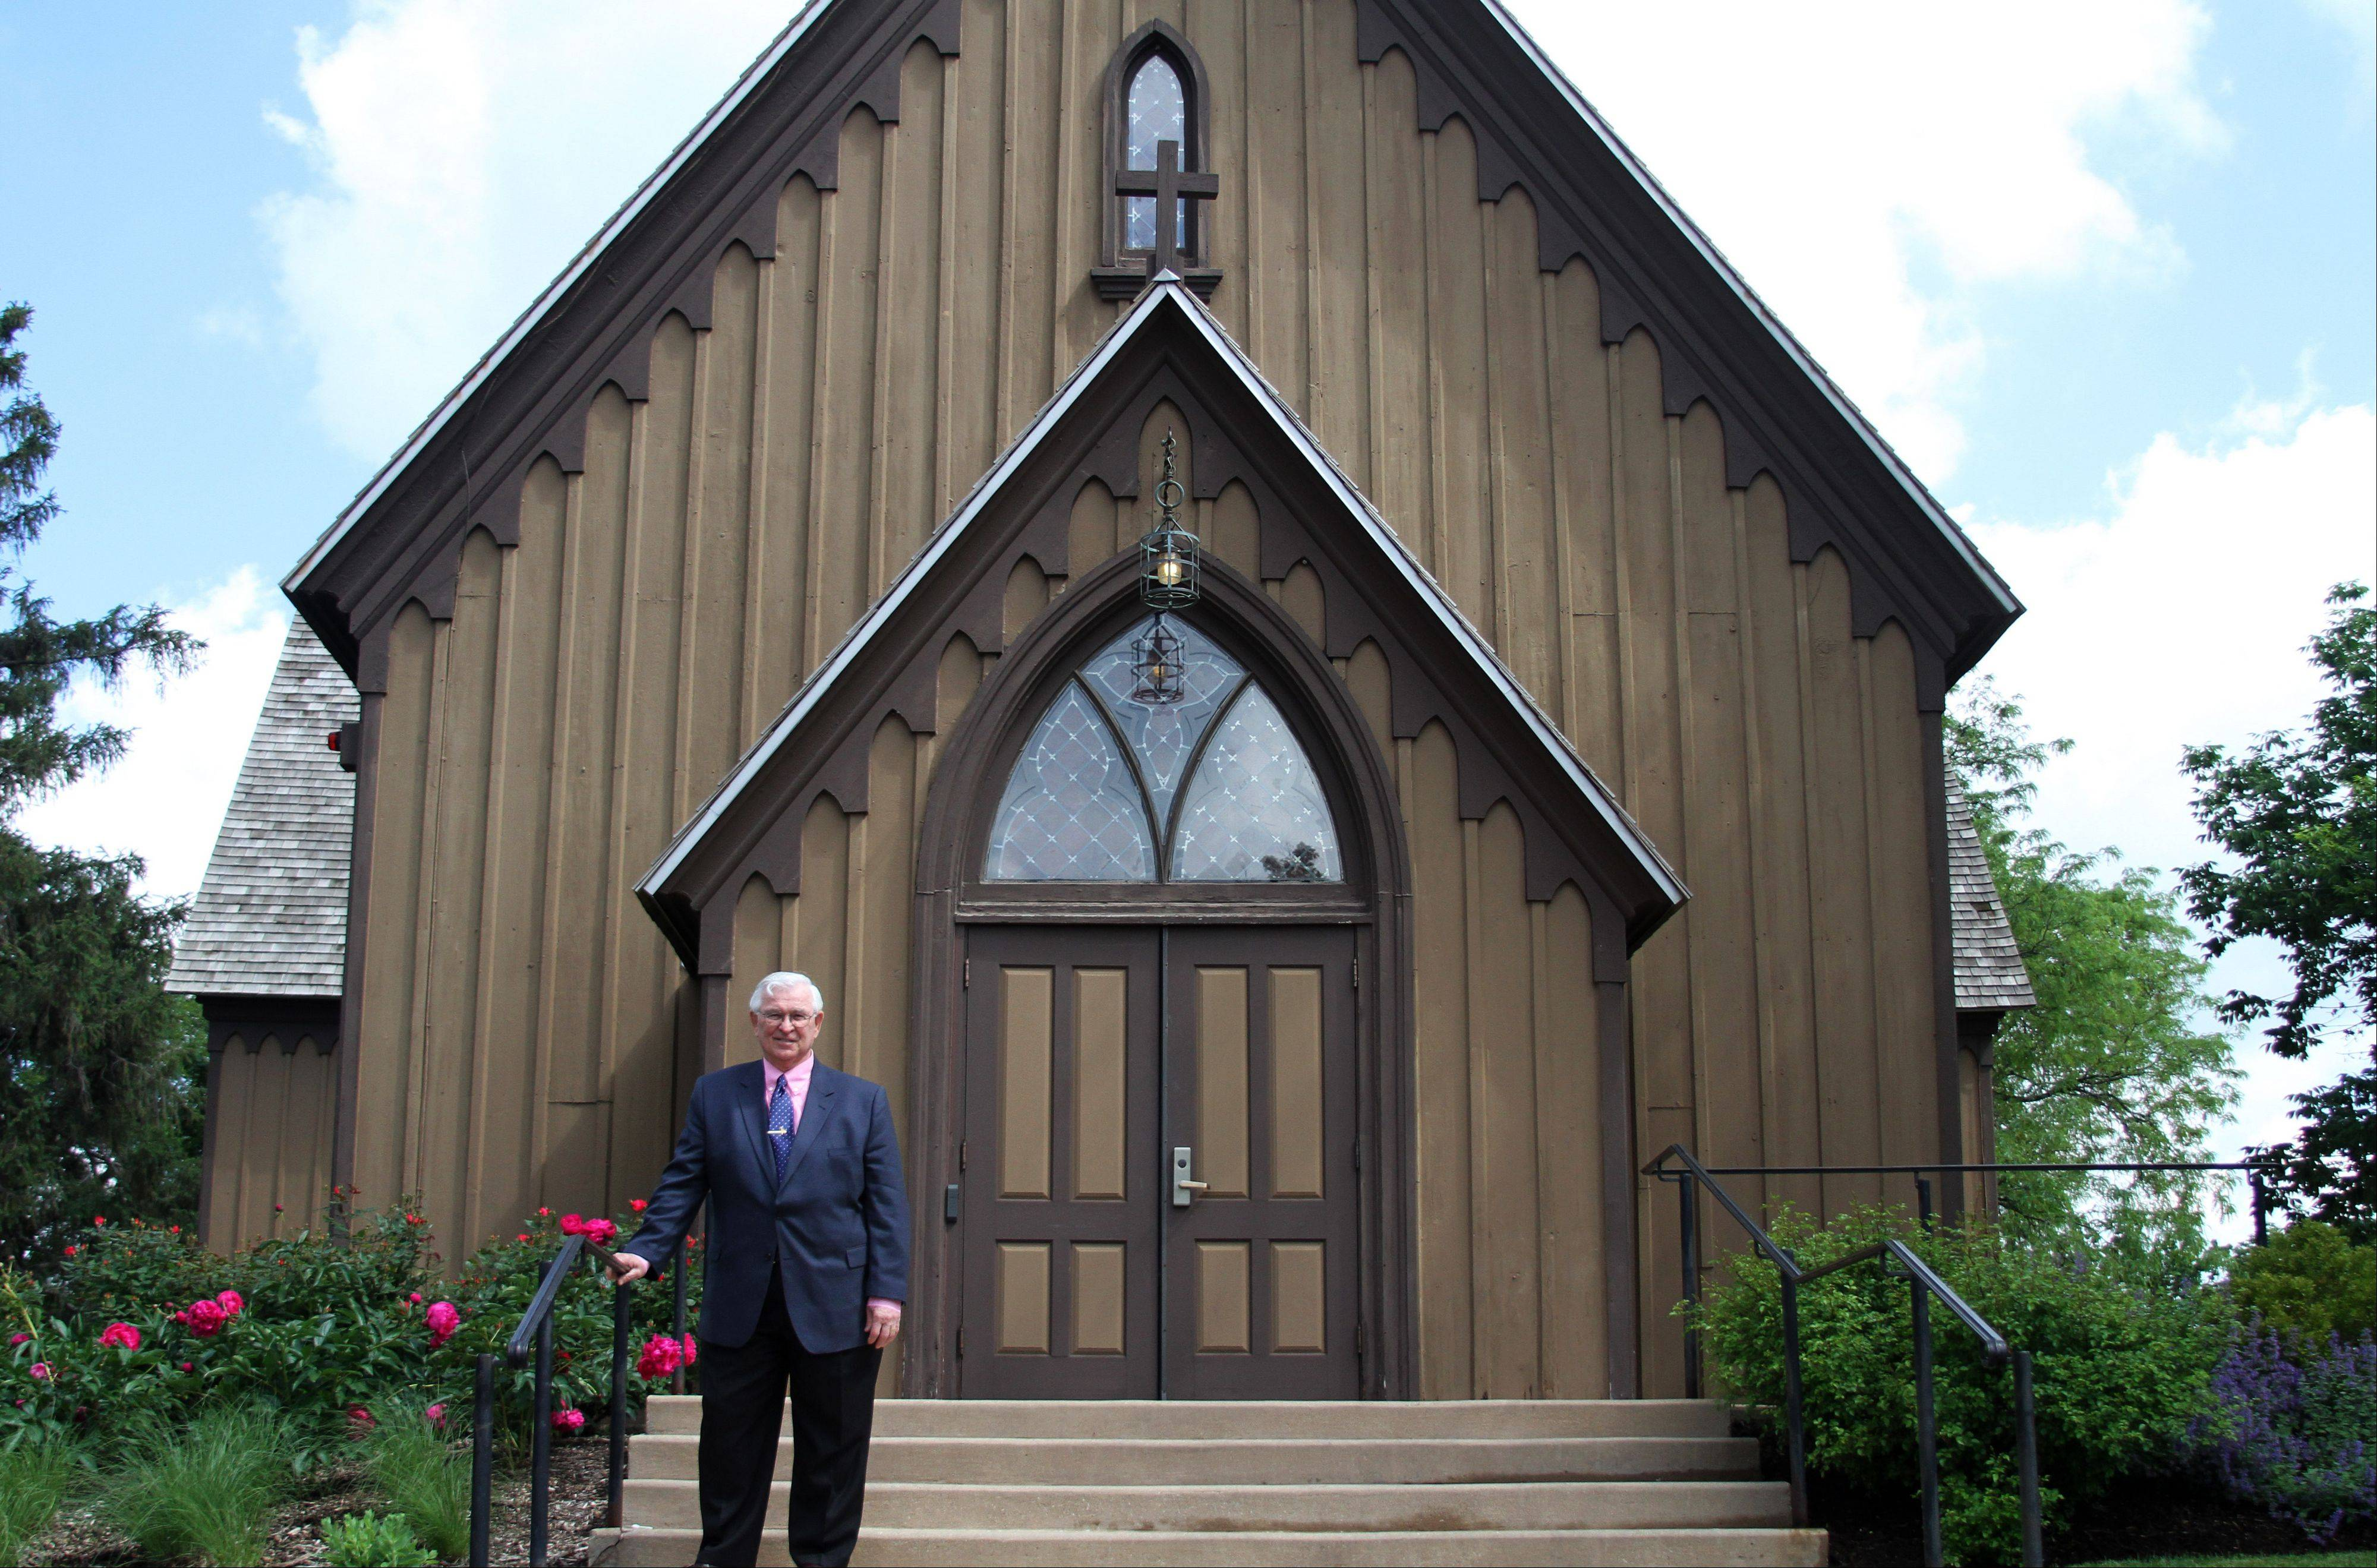 About 80 weddings a year are held in Naper Settlement's Century Memorial Chapel, and interim President and CEO Mike Krol hopes to build partnerships with local hotels housing out-of-town guests.